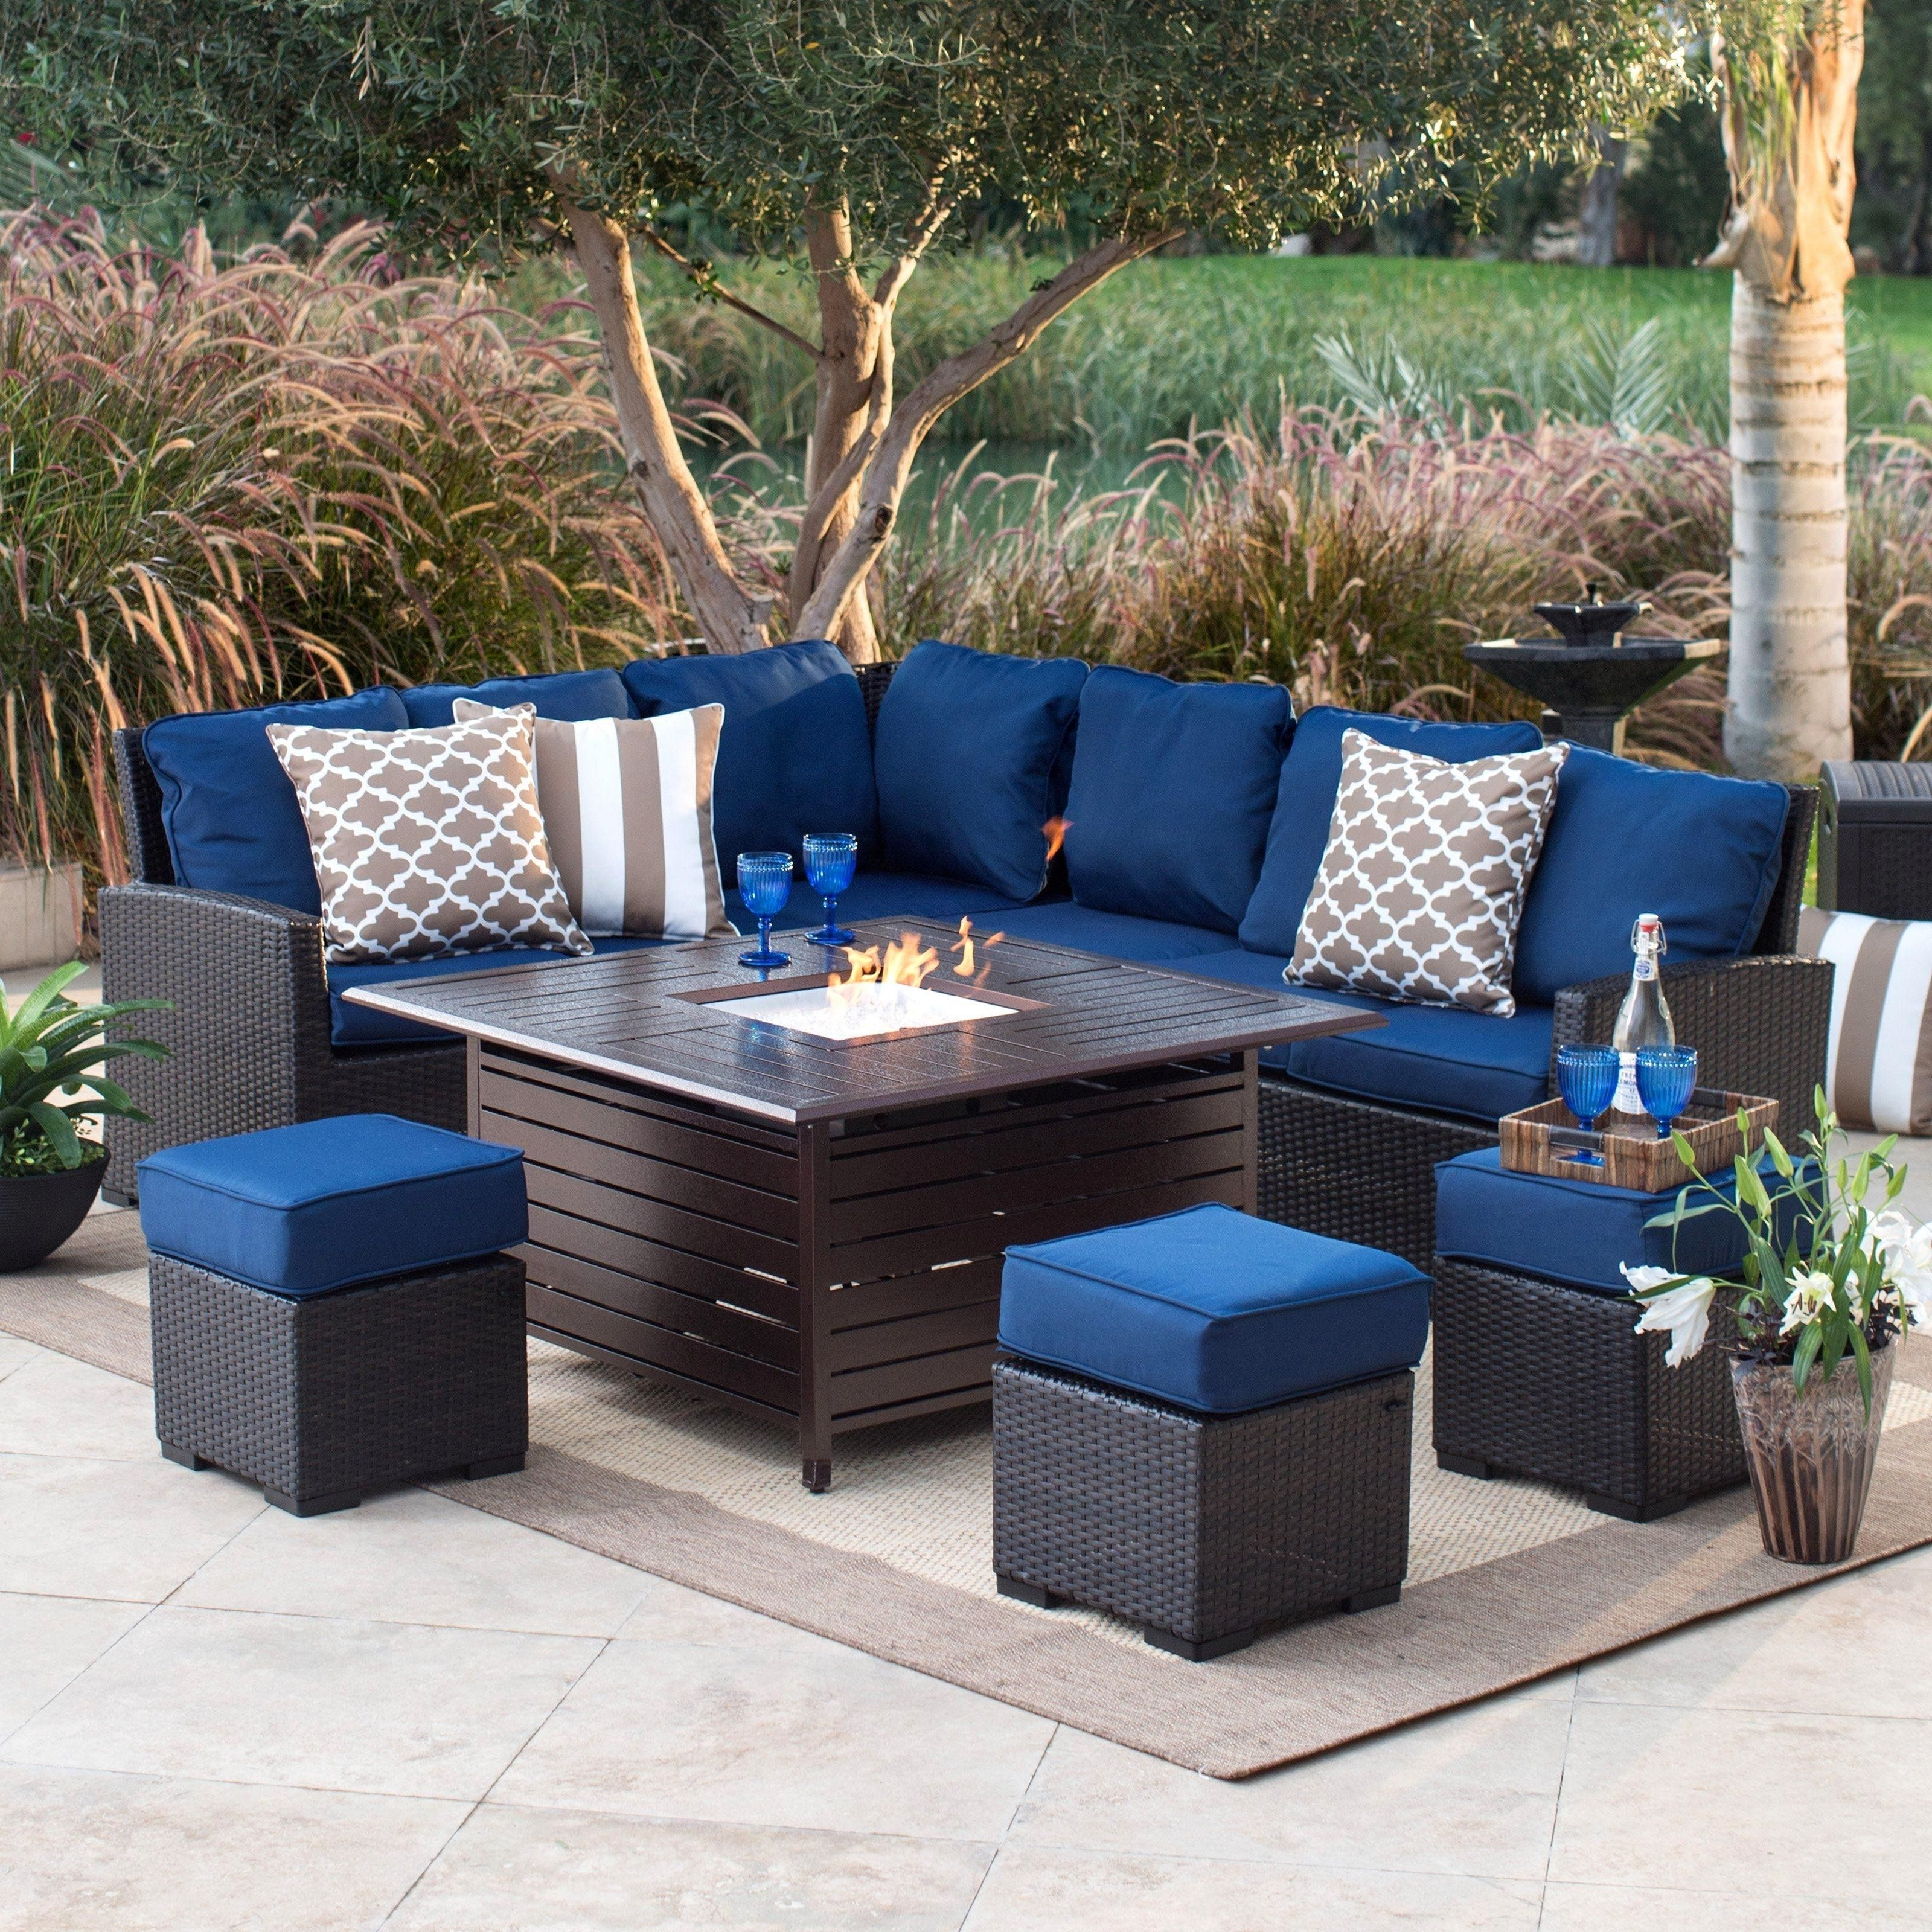 35 Extraordinary Outdoor Living Room With Stunning Firepit Design